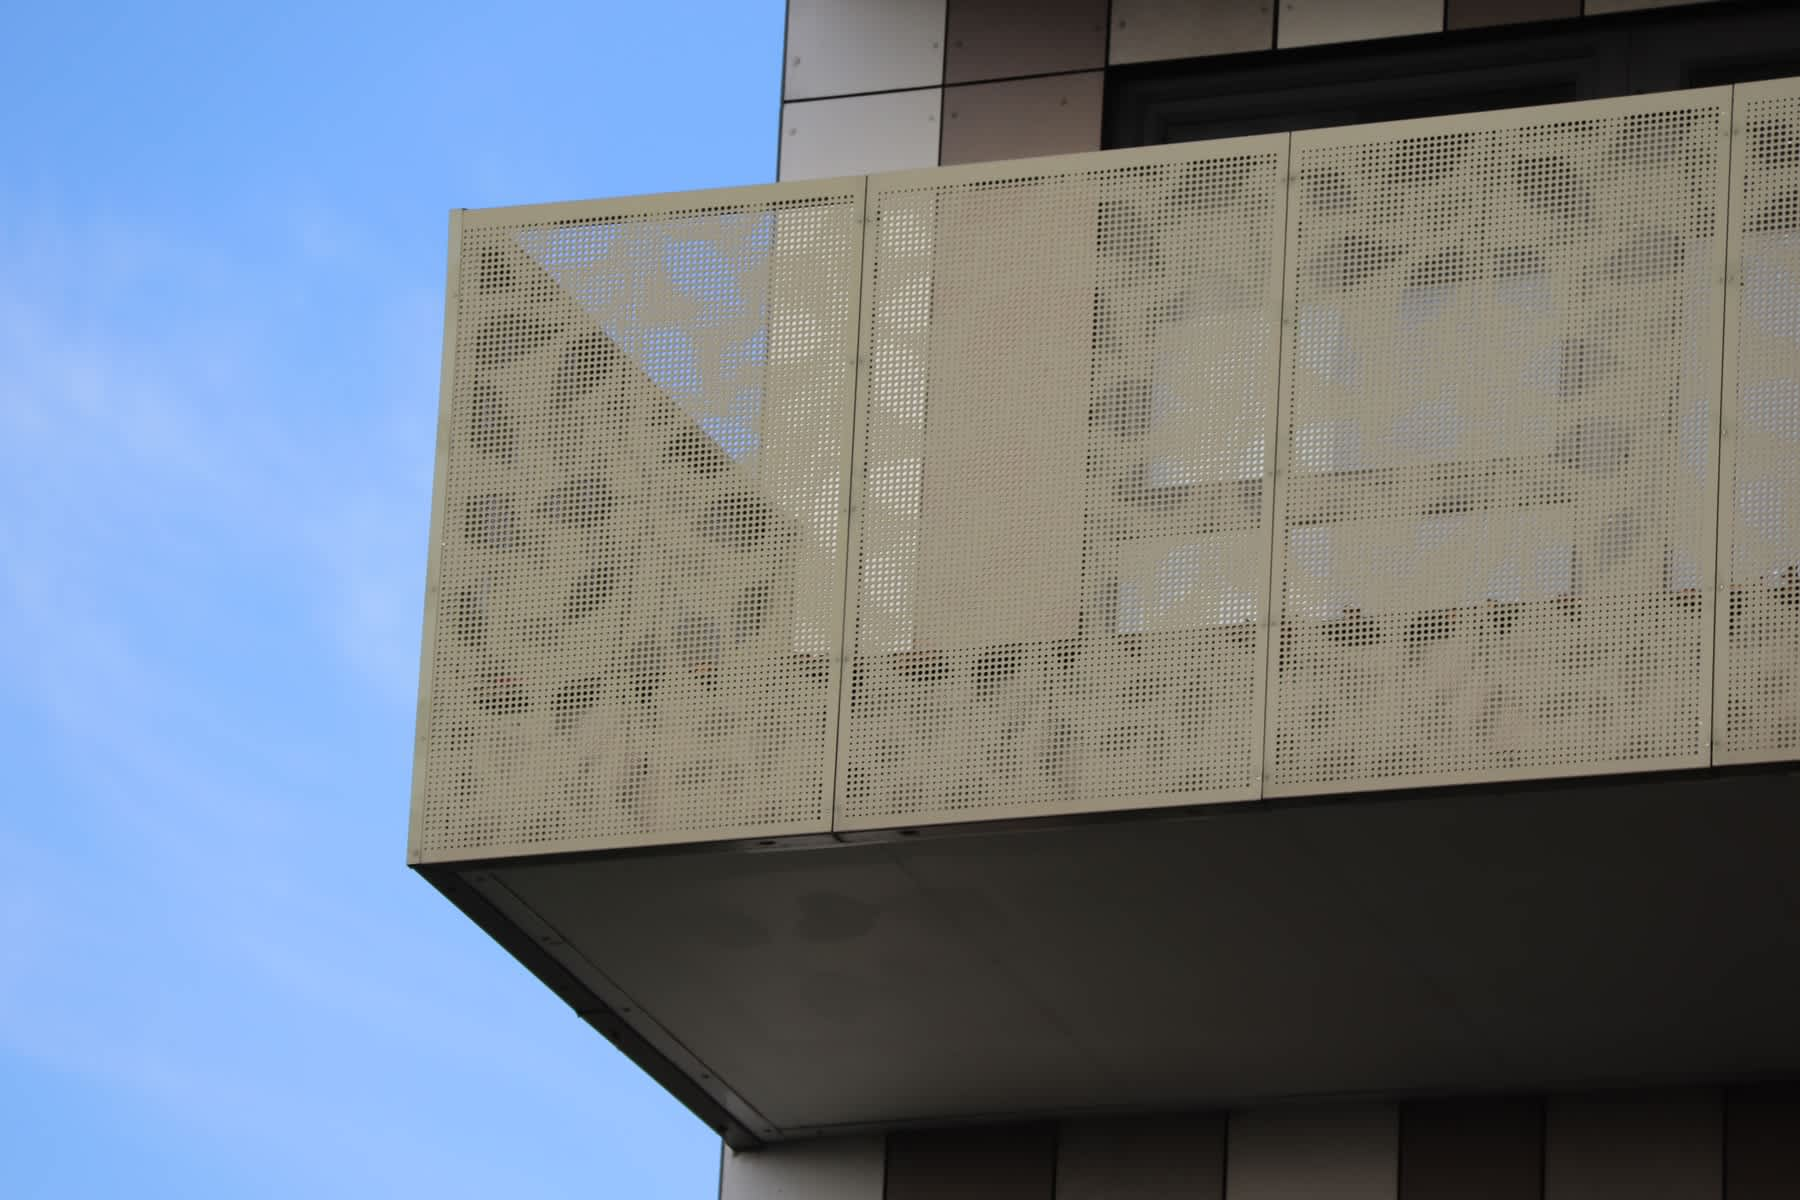 leaf pattern perforated into metal panels